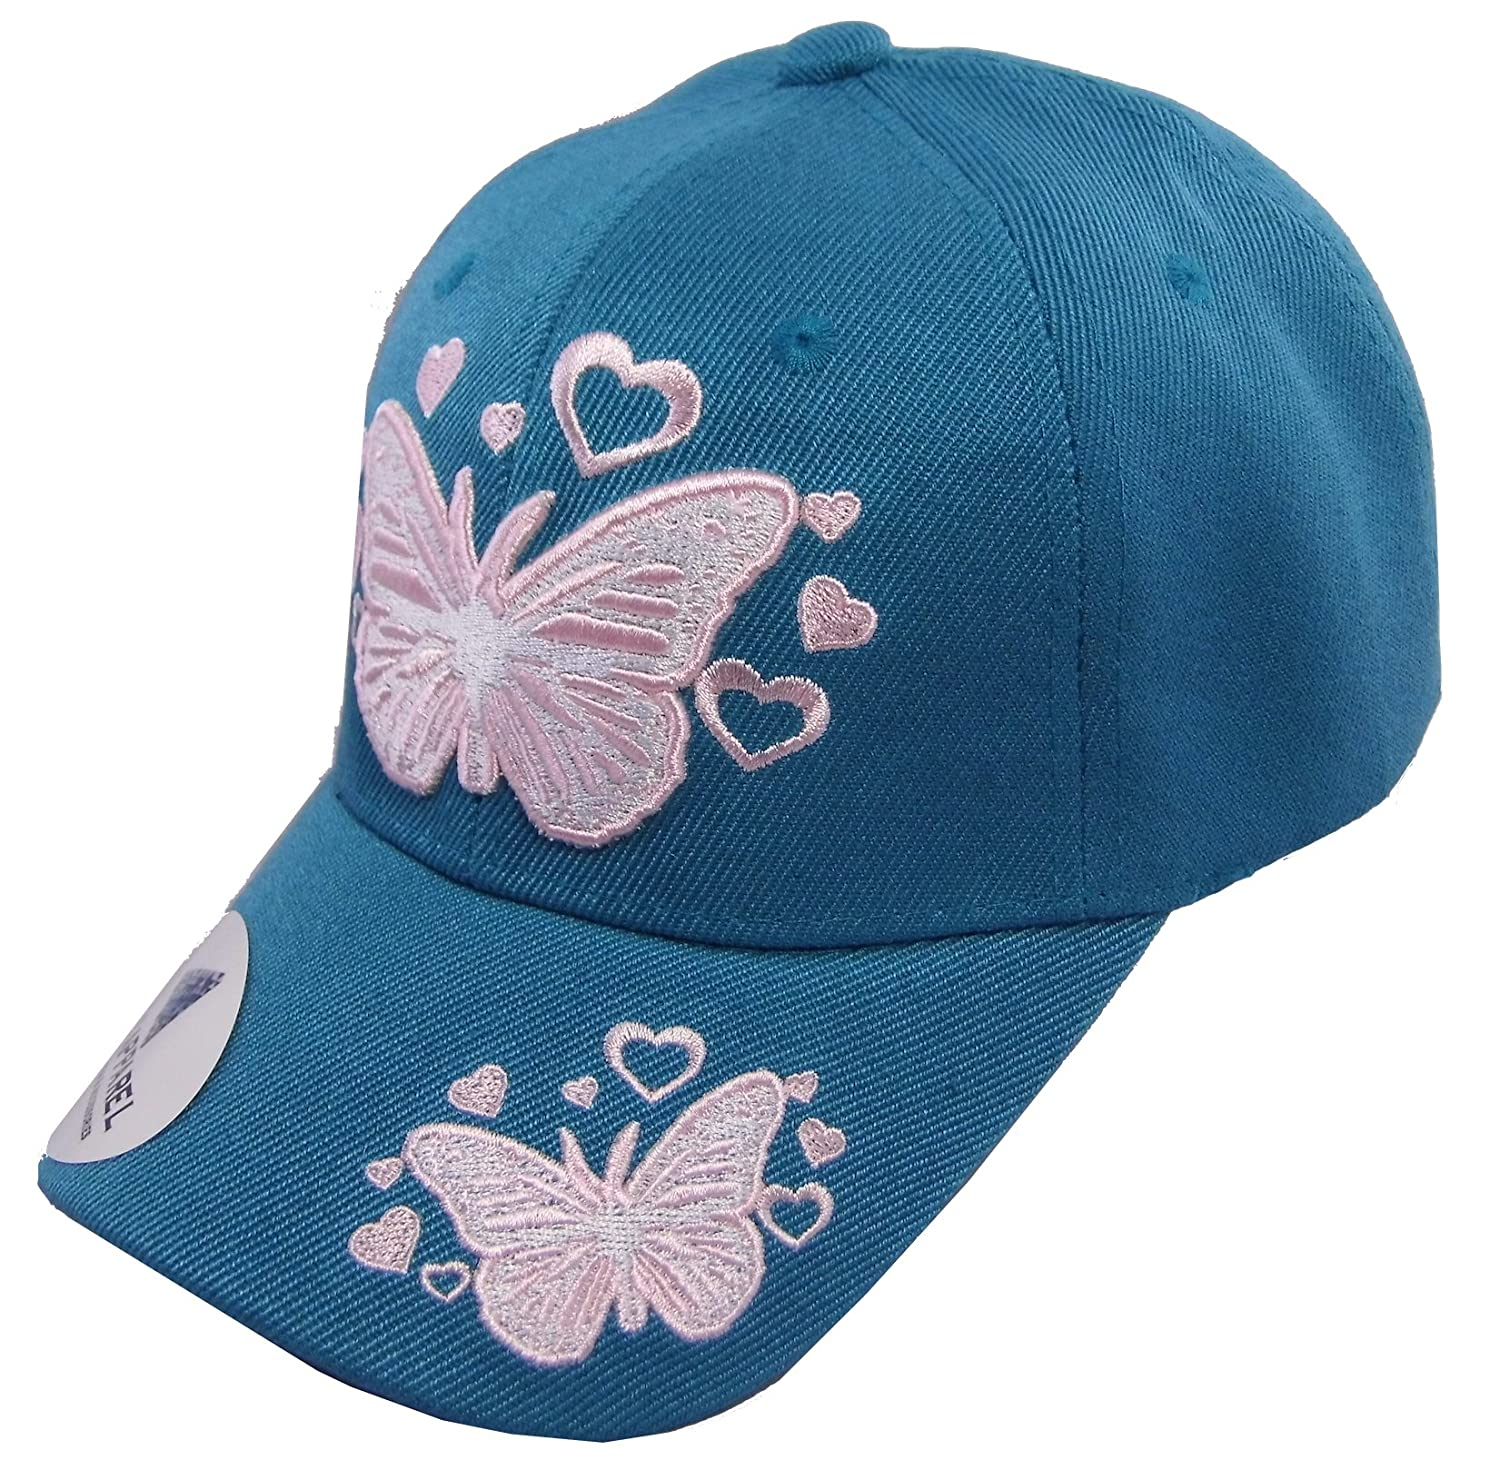 Baseball Cap Kids Youth Pink Butterfly Hat